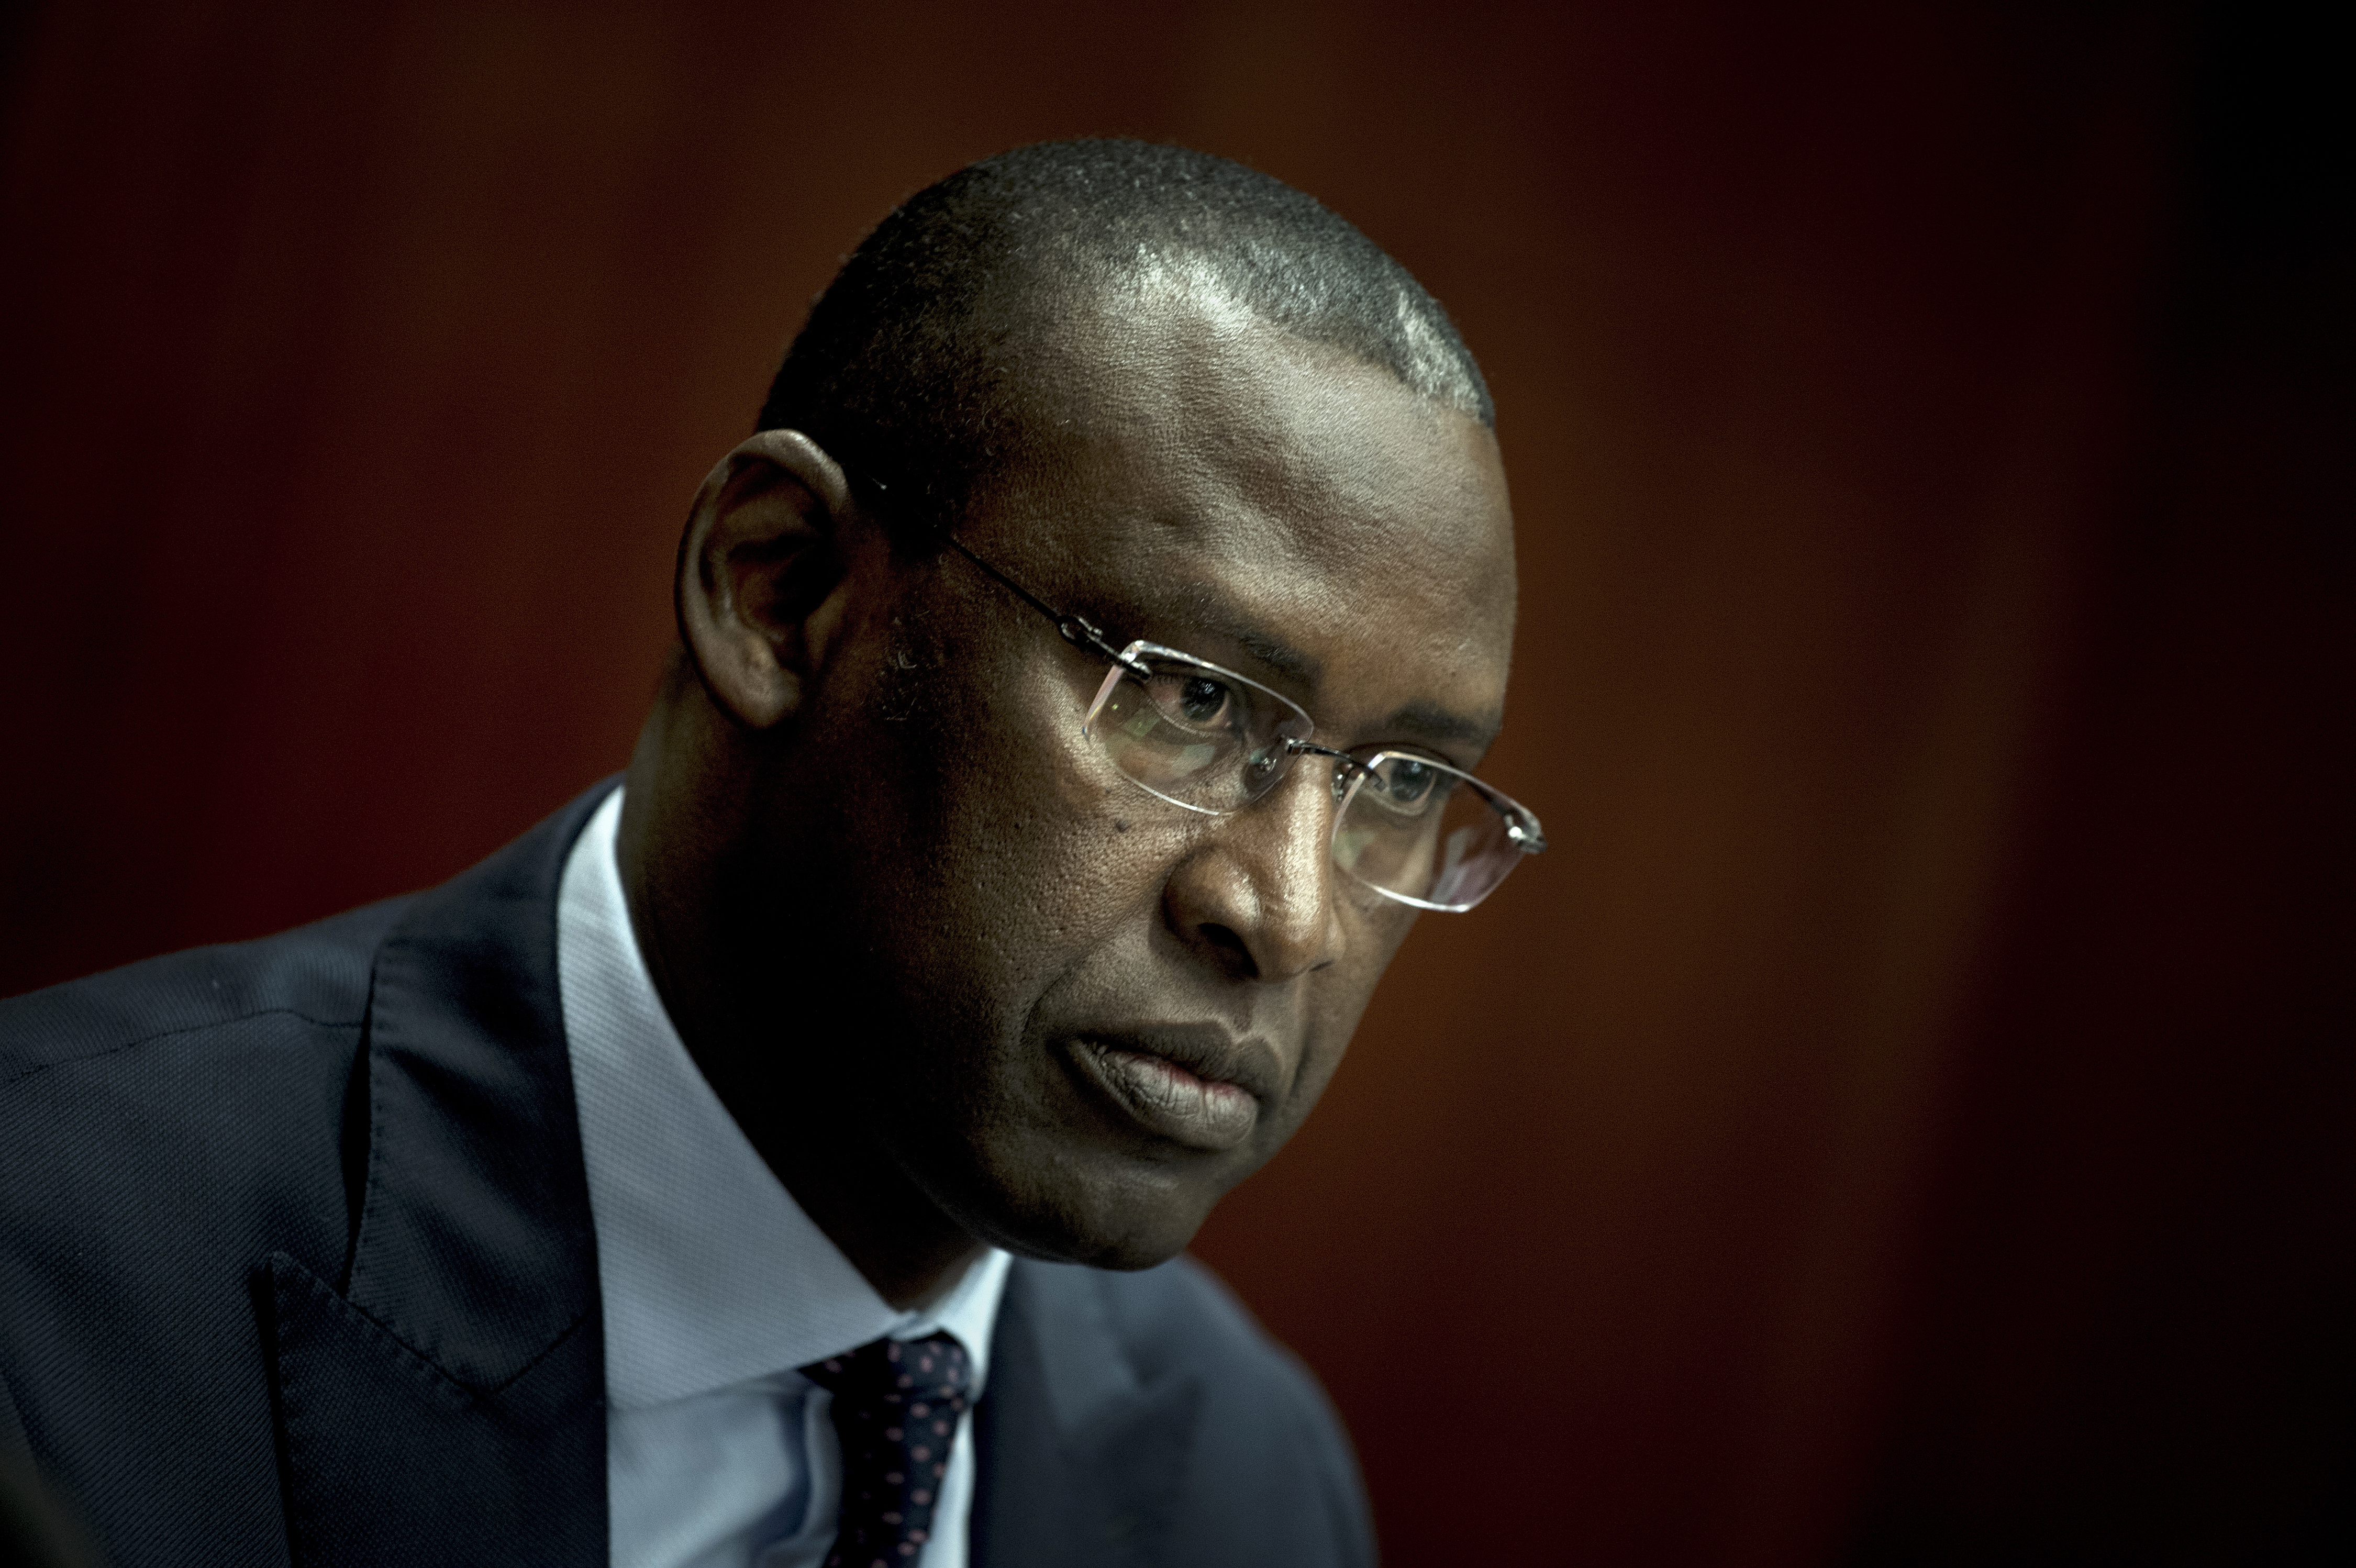 Mali's Foreign Minister Abdoulaye Diop waits to speak during an event at the Center for Strategic and International Studies Nov. 1, 2017, in Washington.